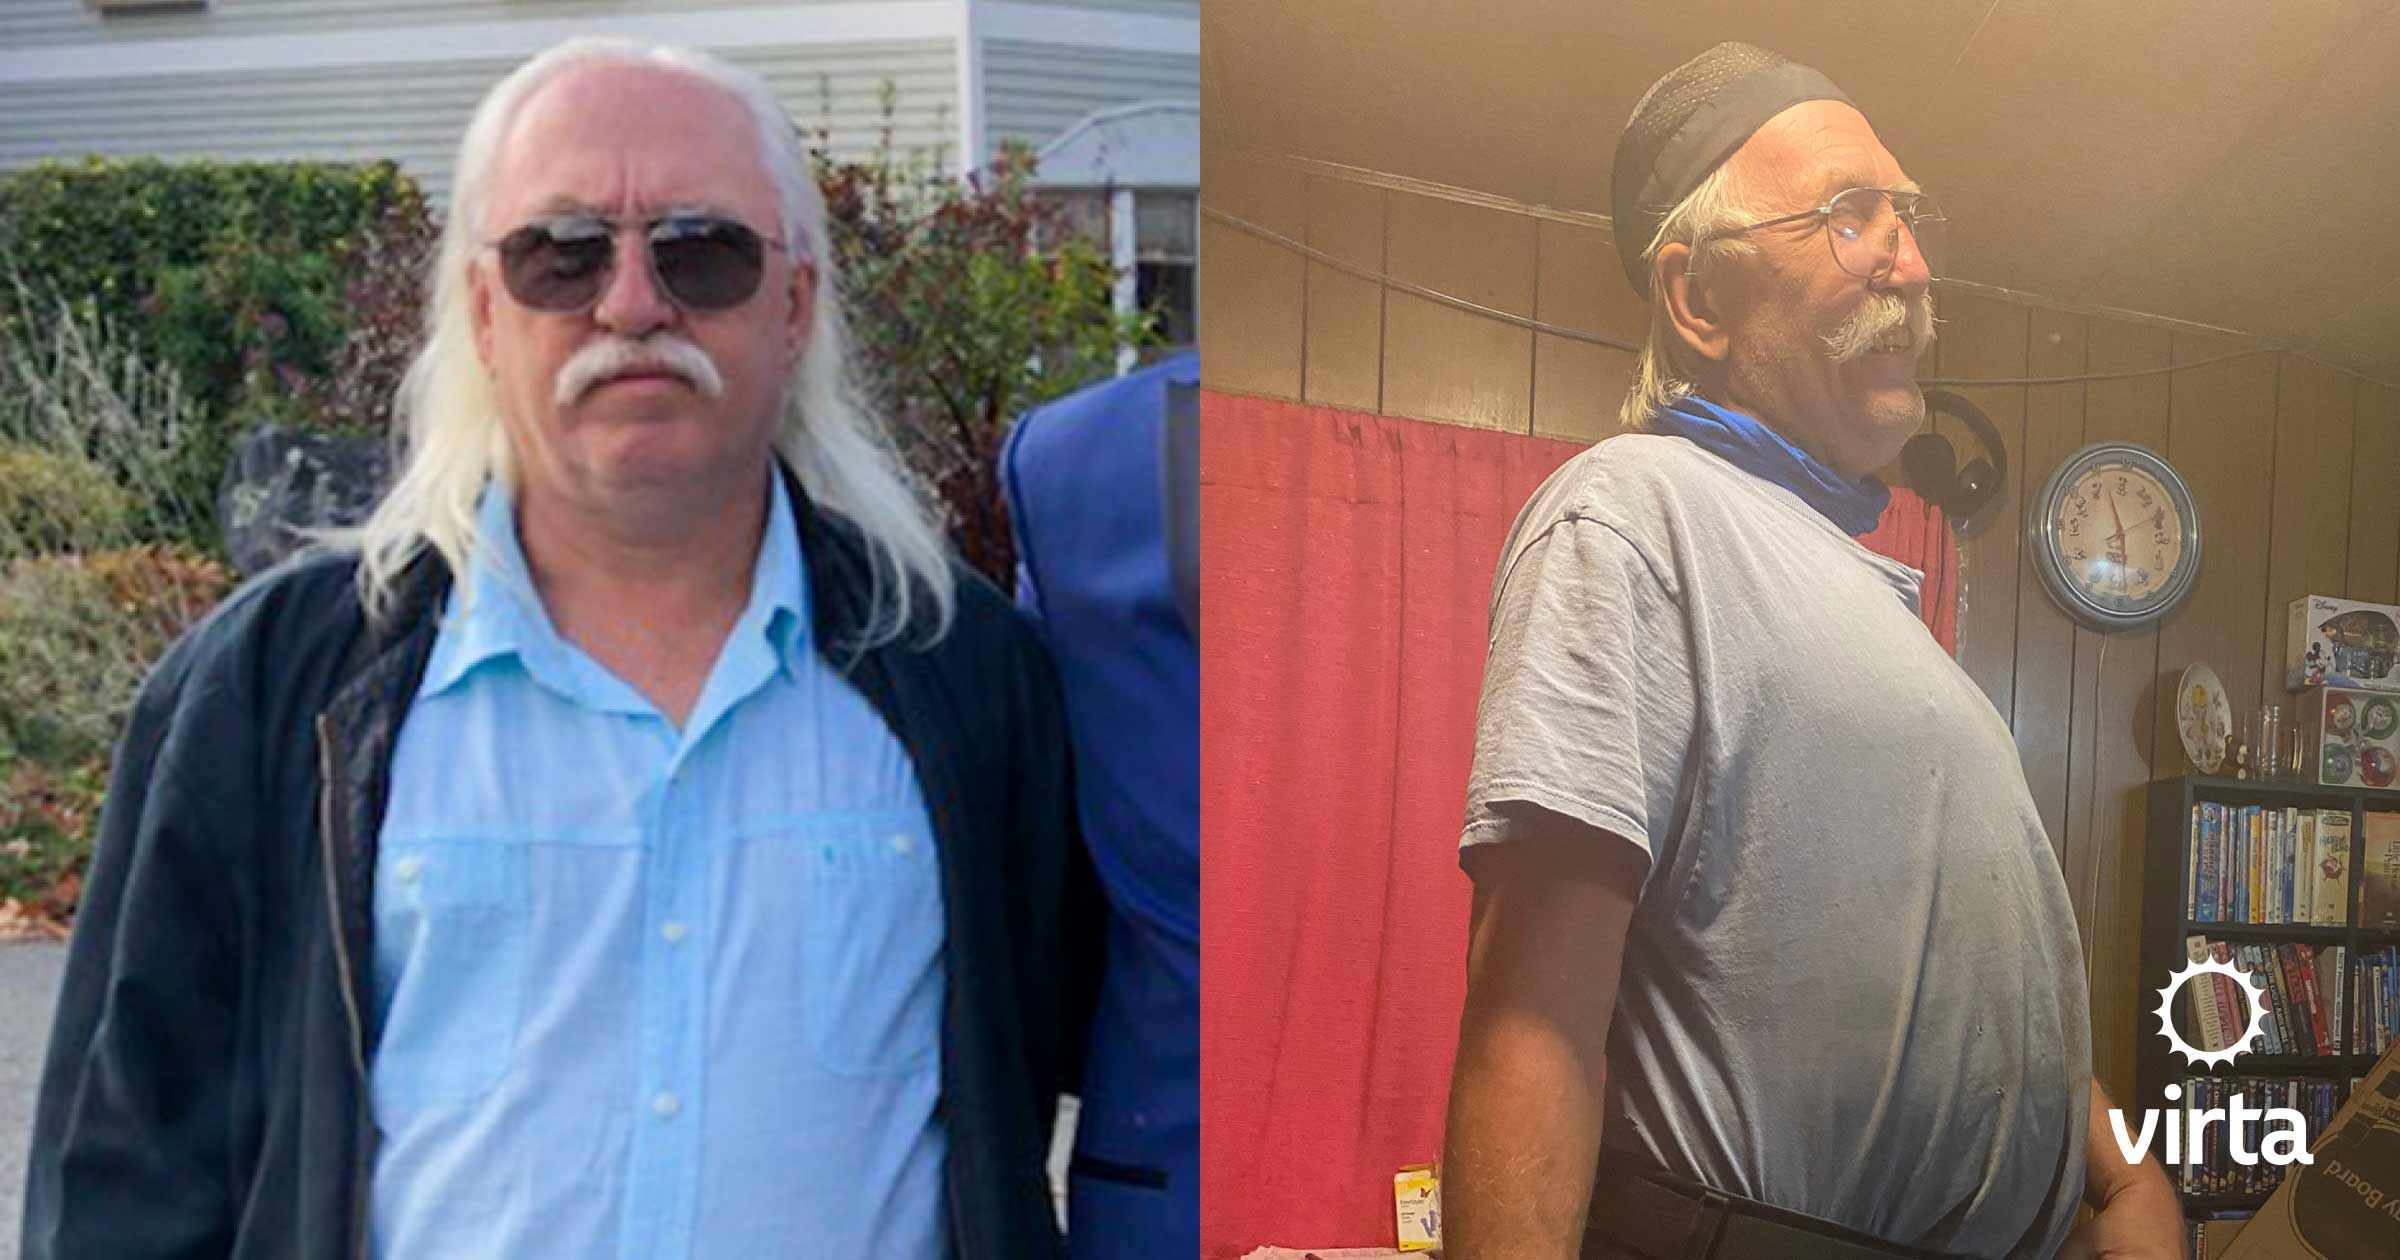 Lenny lost 30 pounds in 6 months with Virta